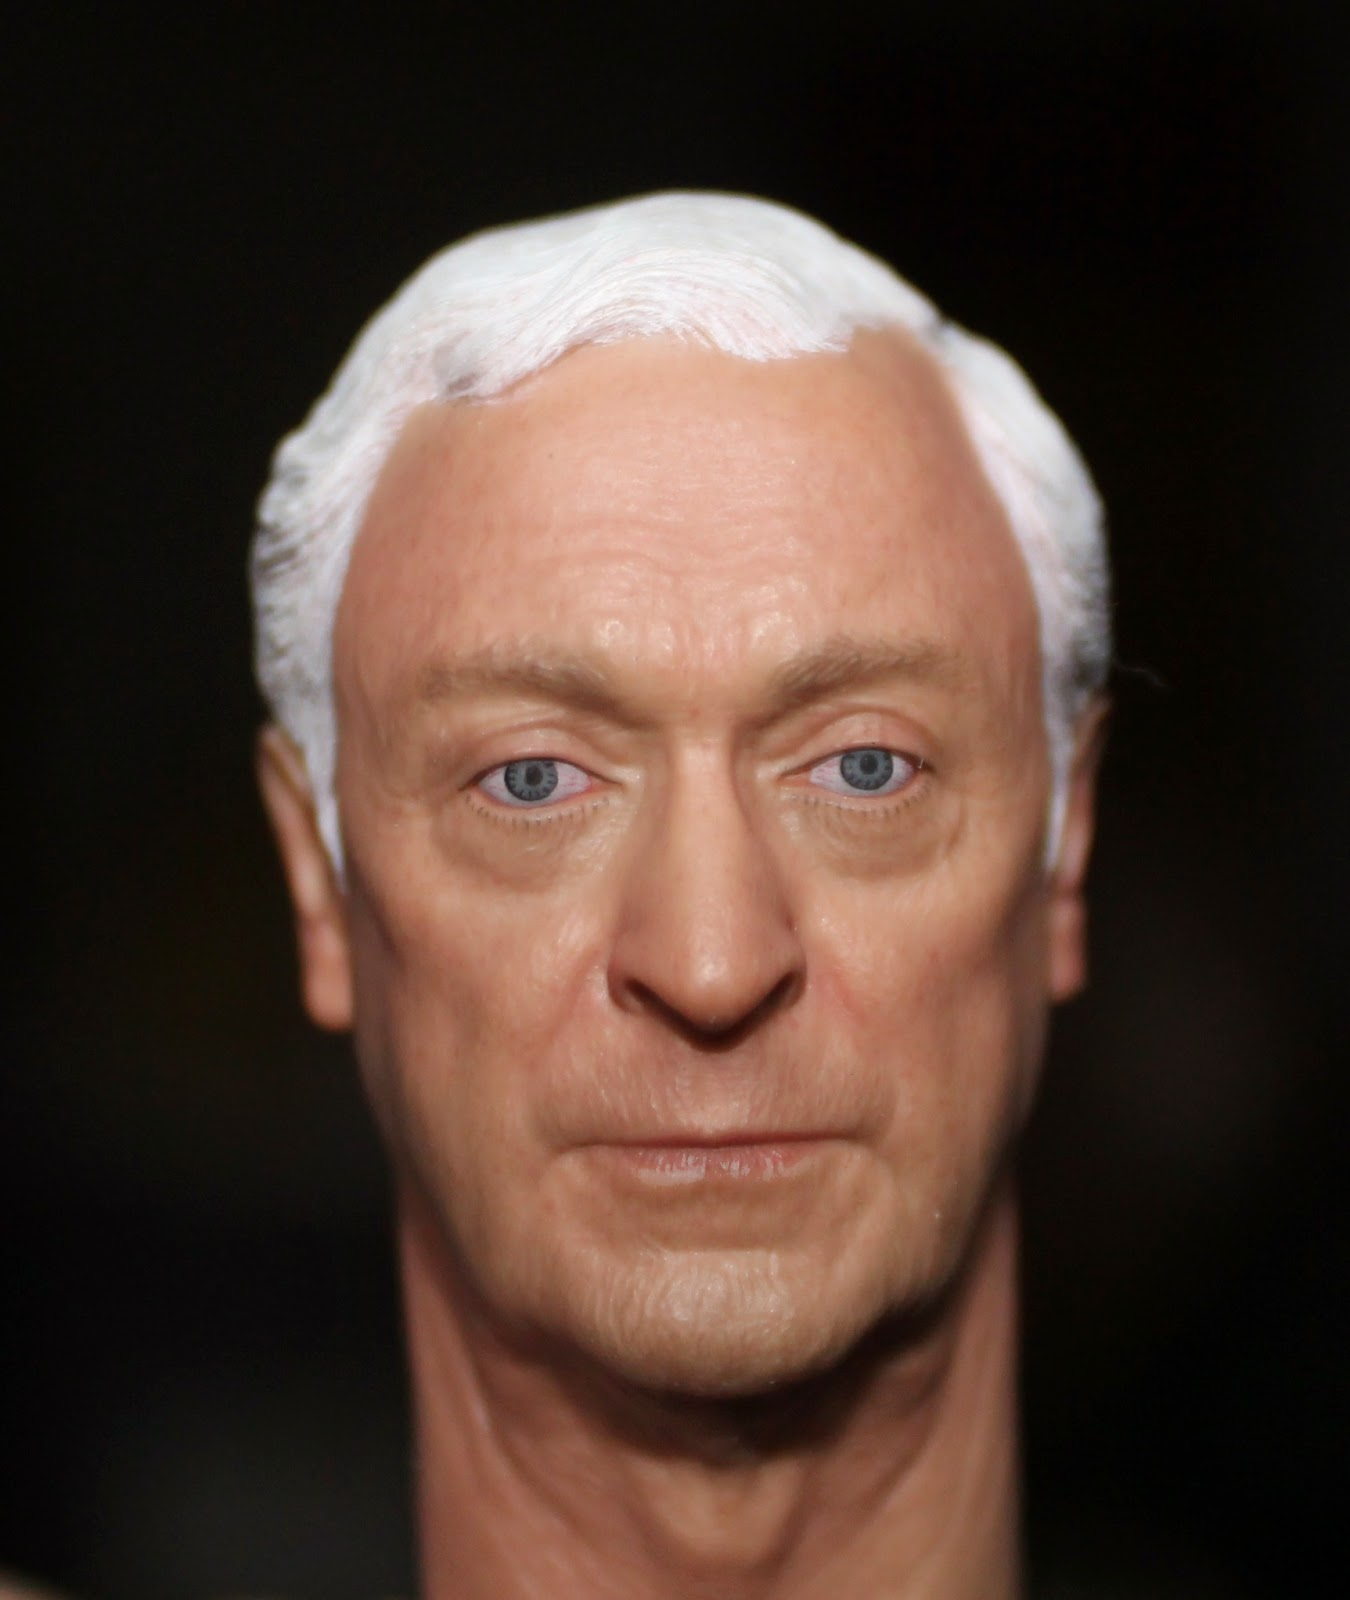 PLANET OF THE DOLLS: A Body For Hot Toys 'Michael Caine